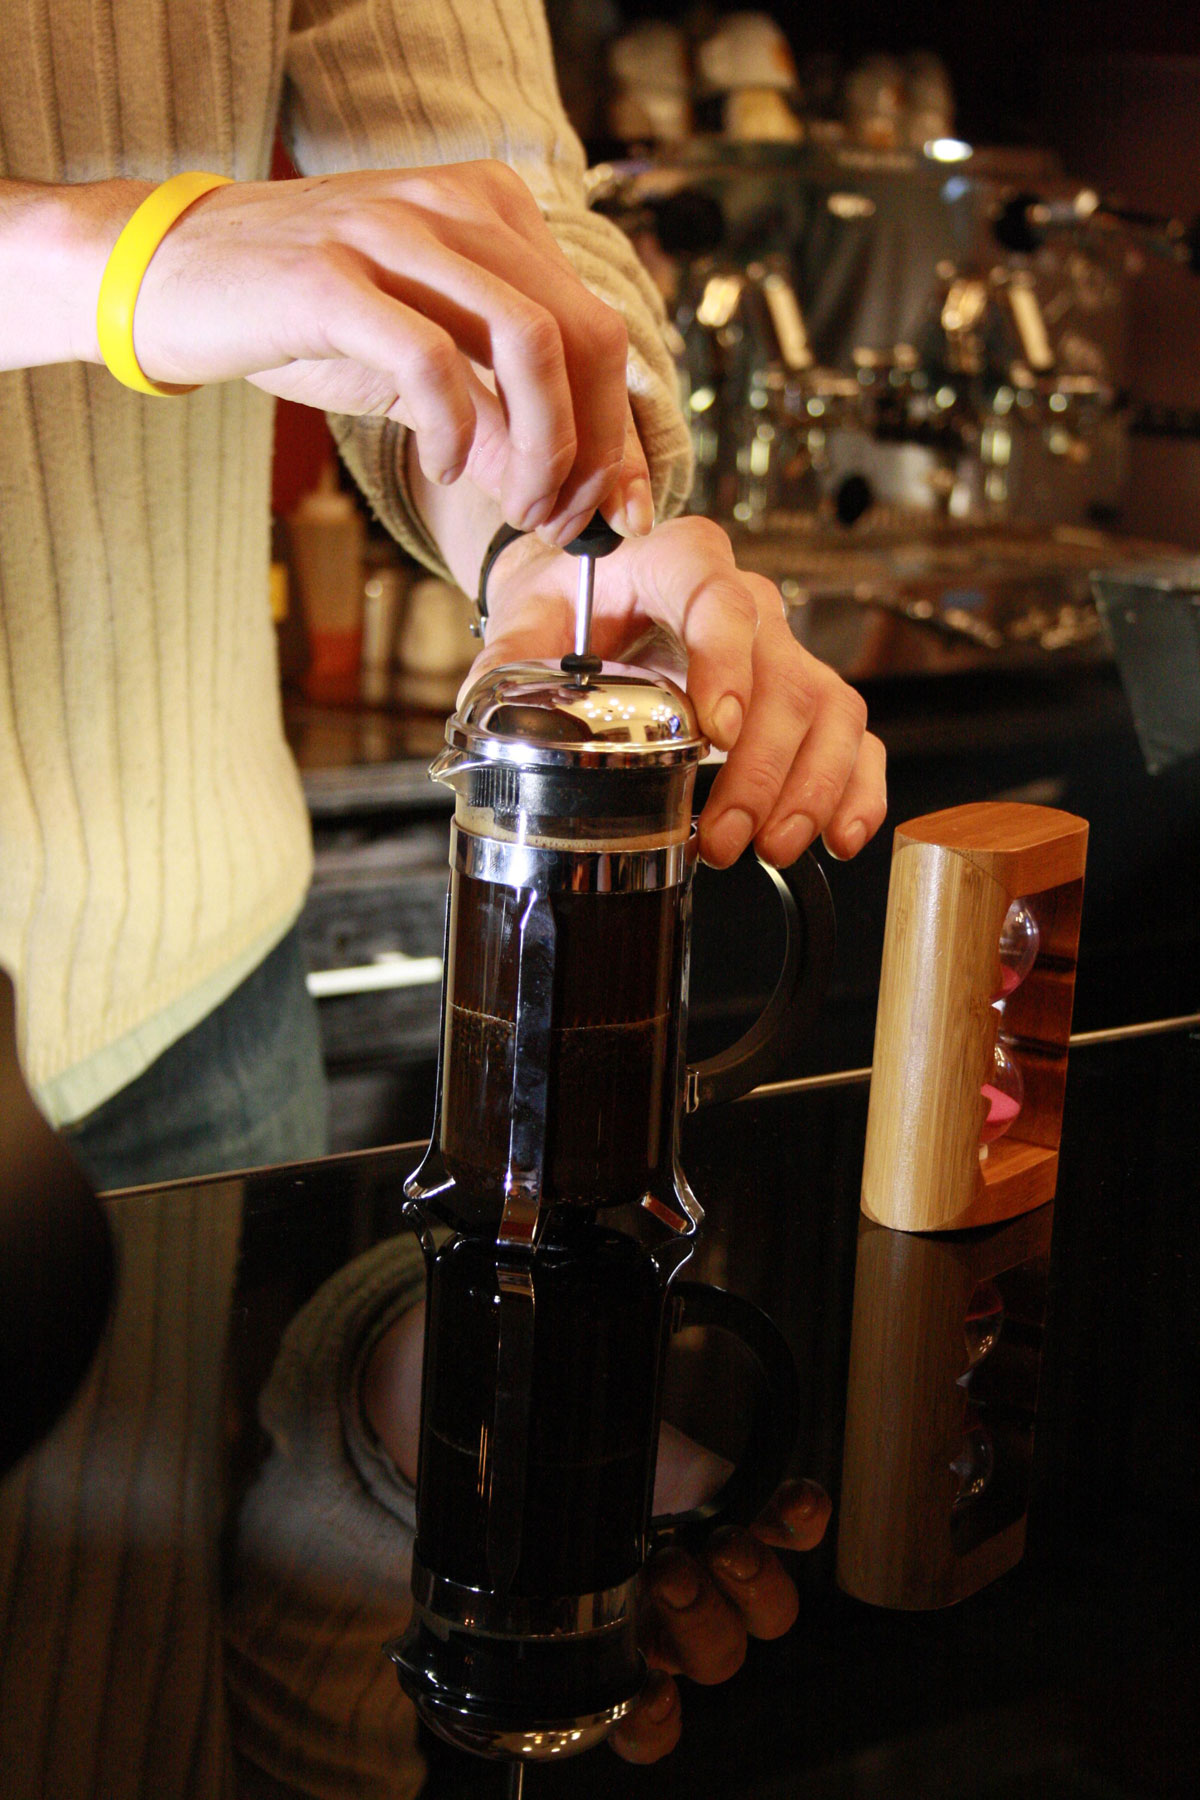 French press coffee maker in use.